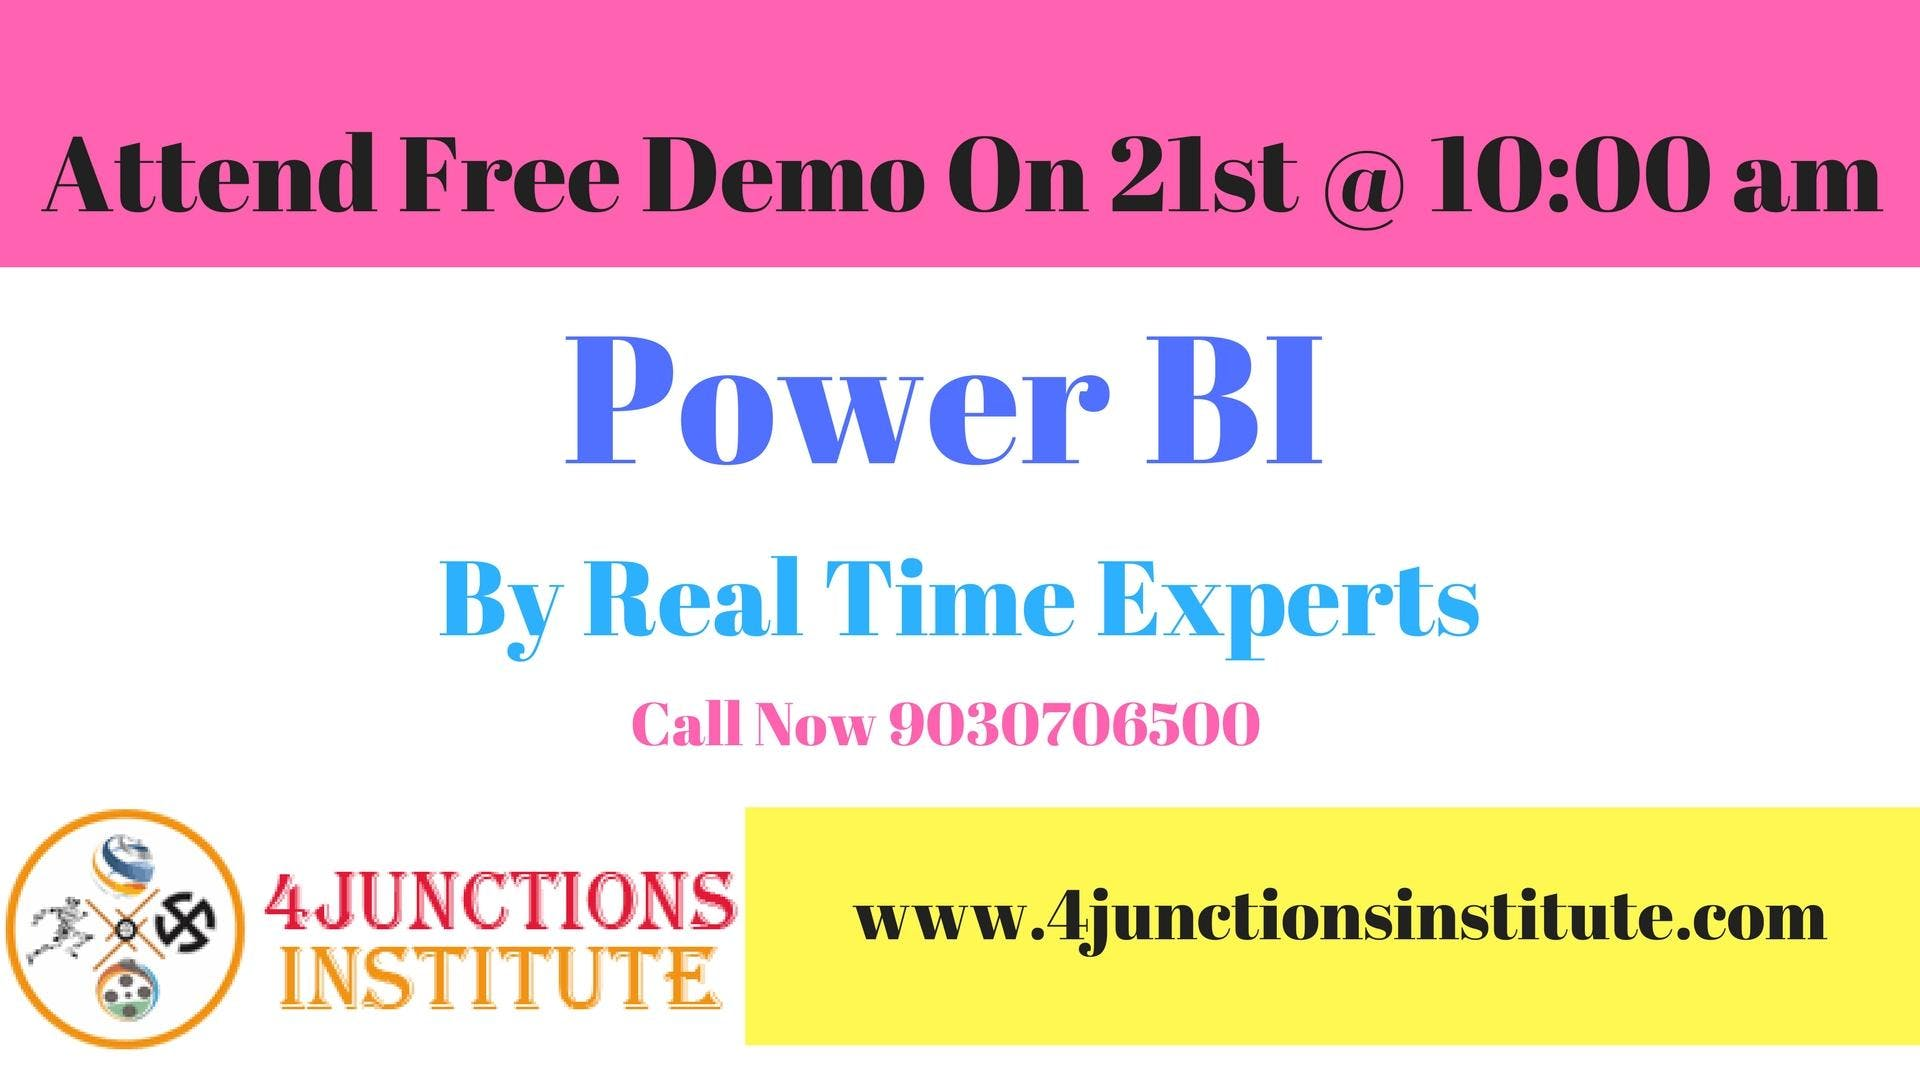 Power Bi Training And Certification Free Demo At 4 Junctions Hyderabad